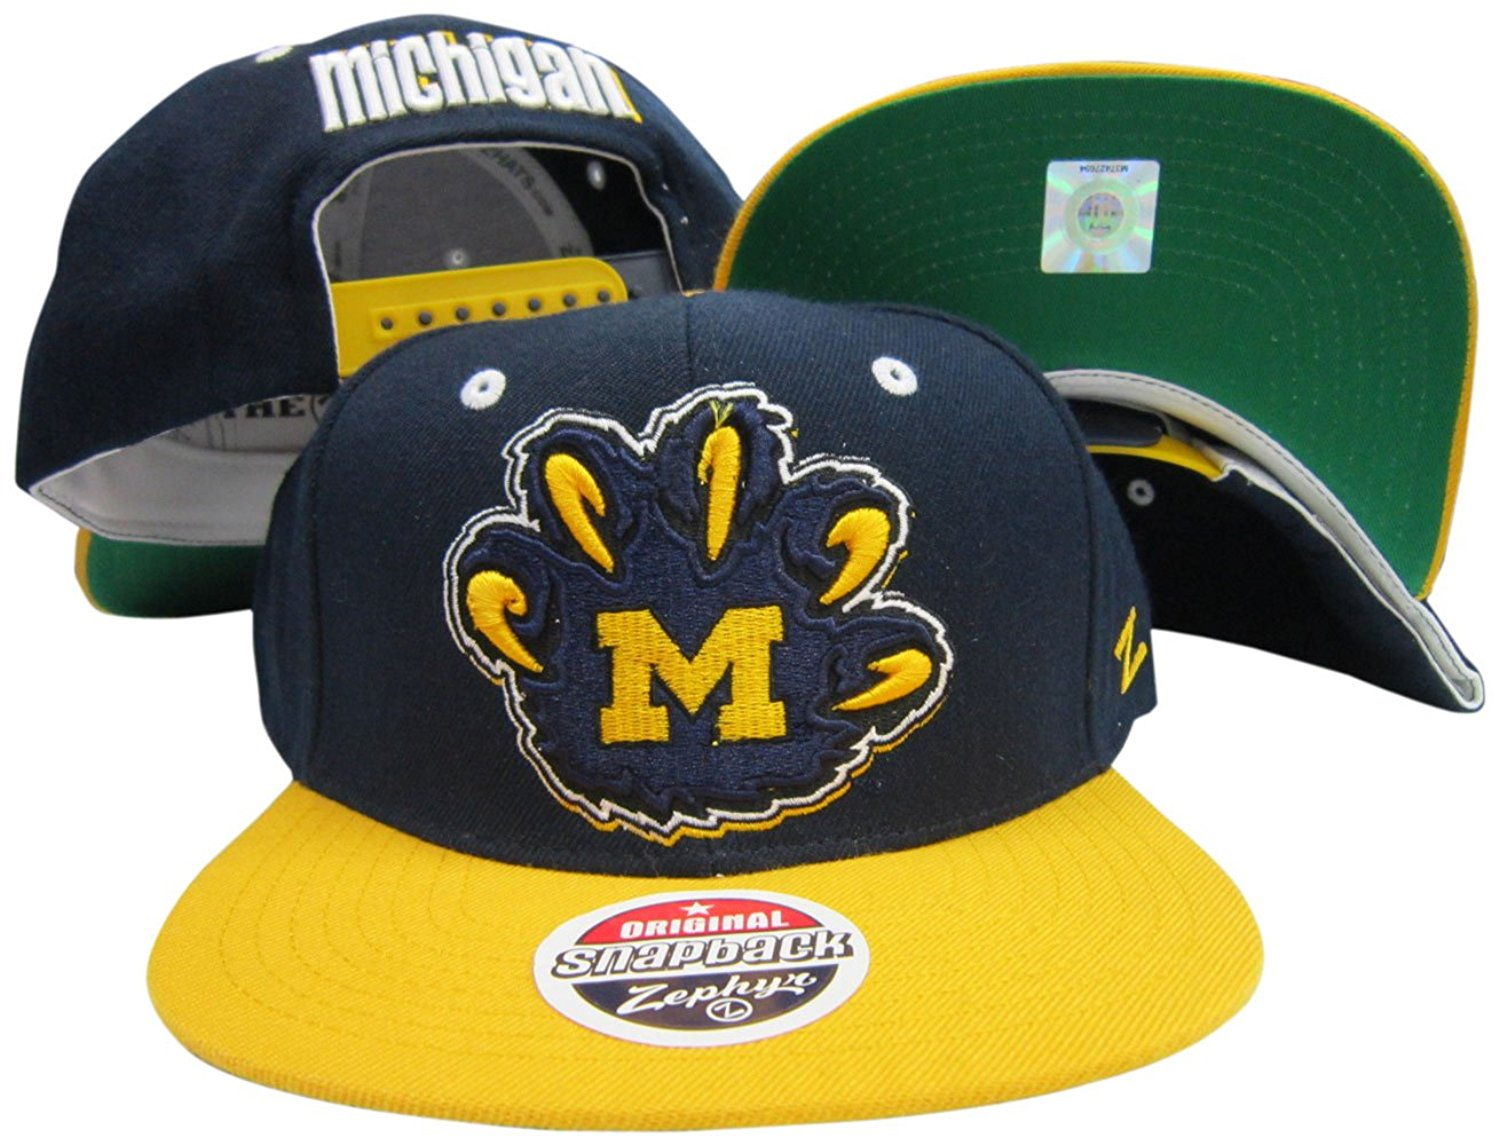 check out a8c1a 91141 Get Quotations · Michigan Wolverines Adjustable Snapback Hat   Cap